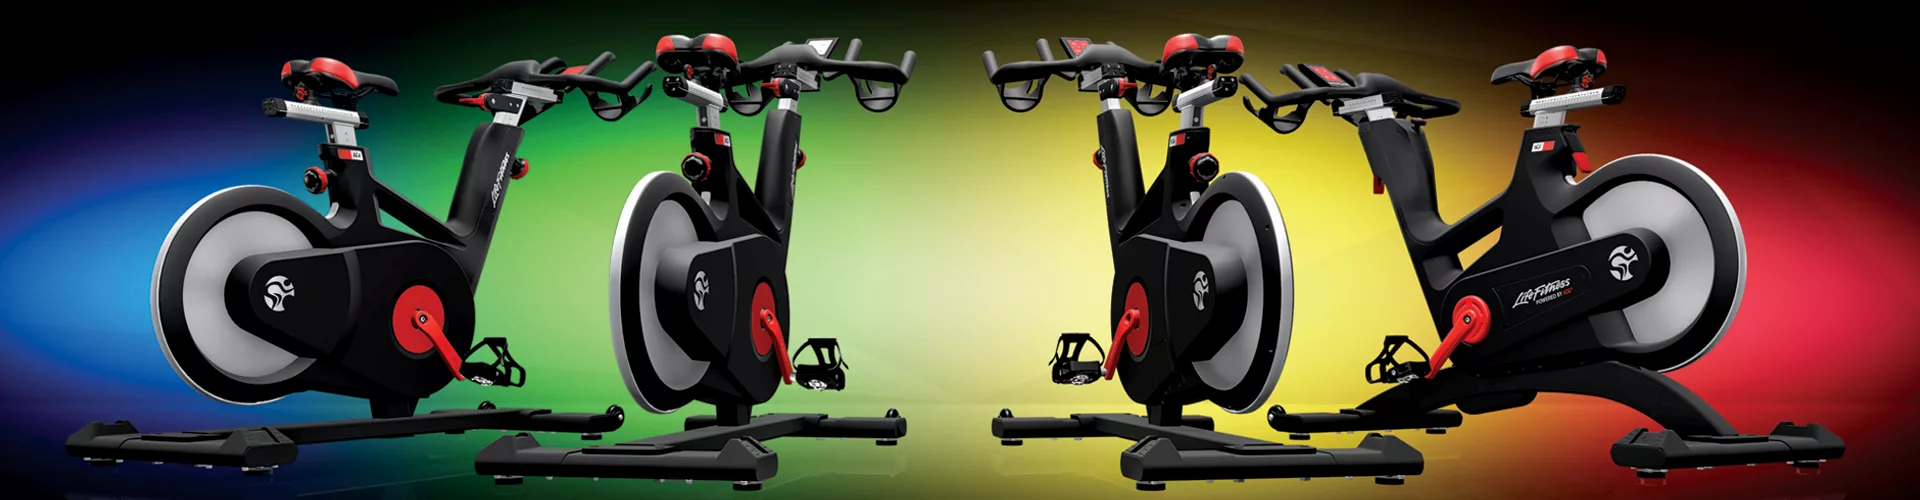 Spin Bikes - Life Fitness